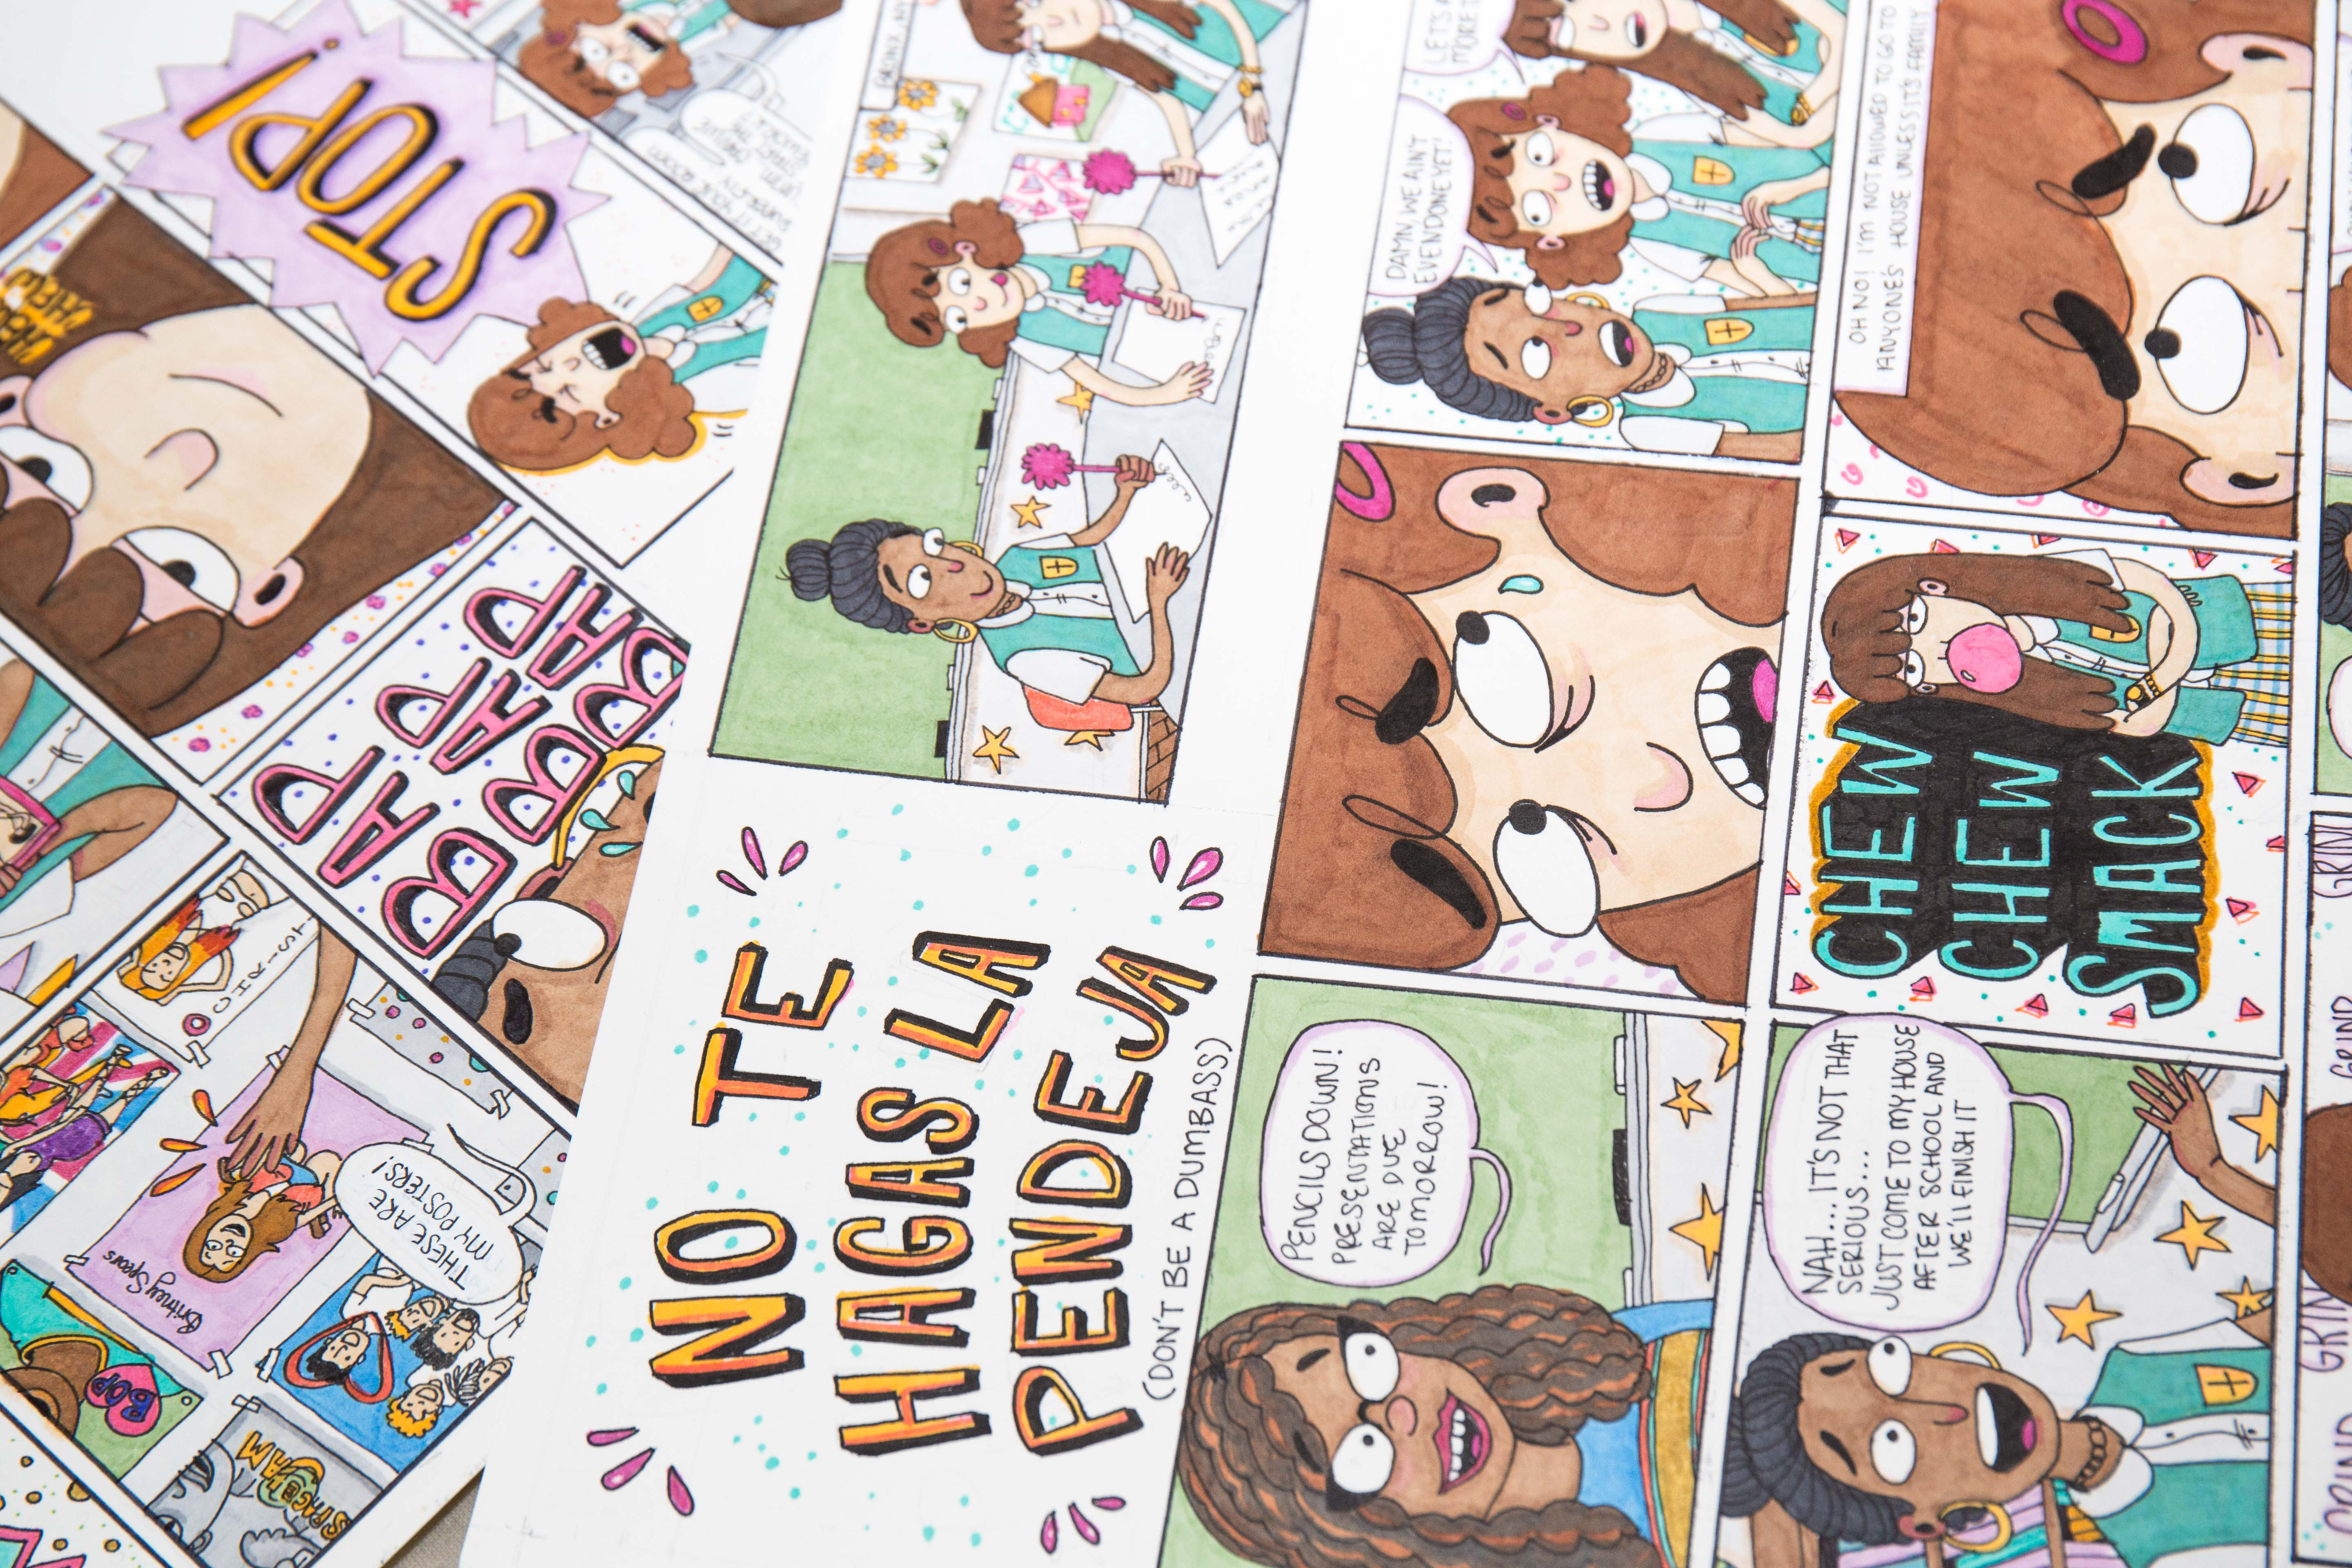 Stephanie Rodriguez Takes on Slut Shaming, Anxiety & Heartbreak in Her Super Relatable Comics